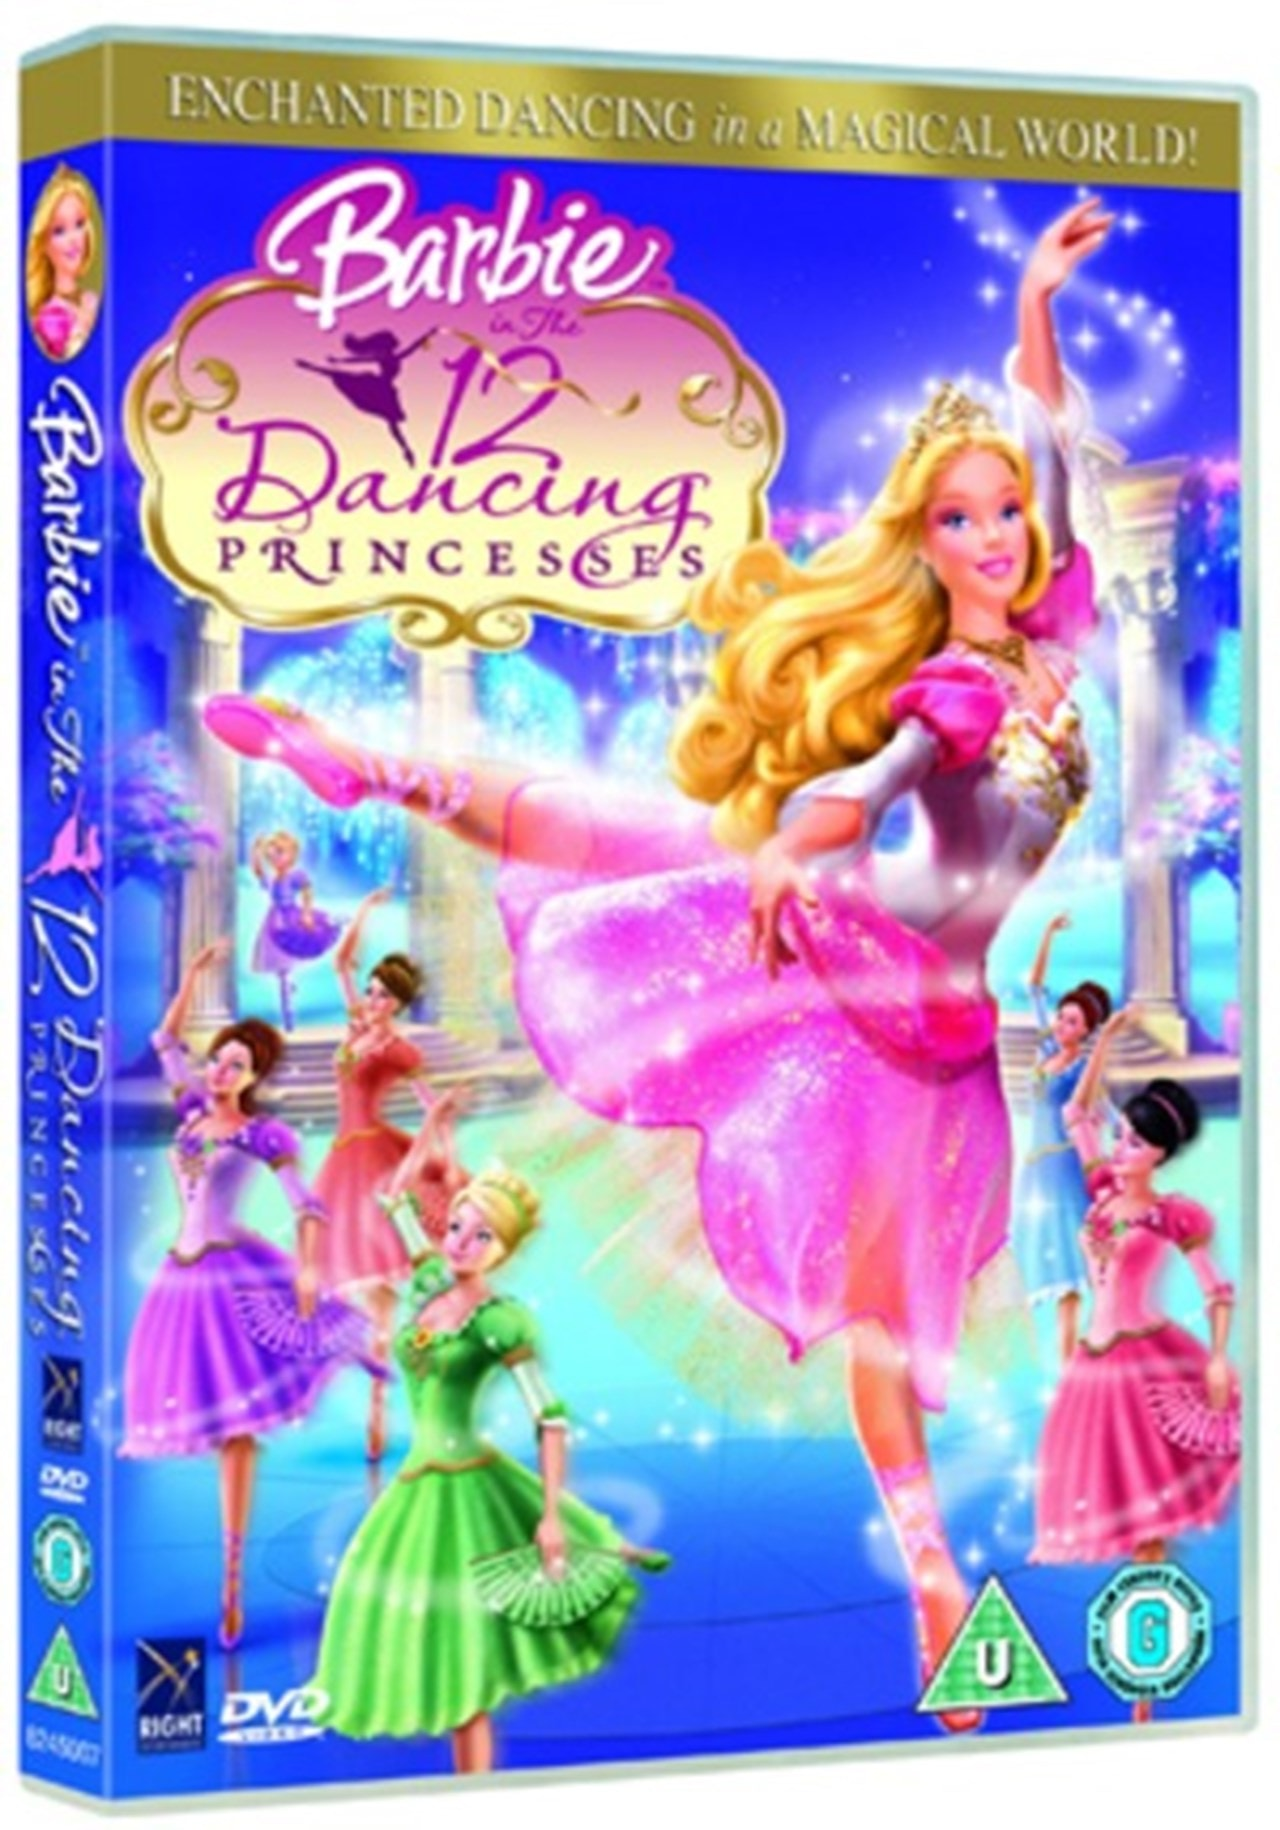 Barbie: The Twelve Dancing Princesses - 1